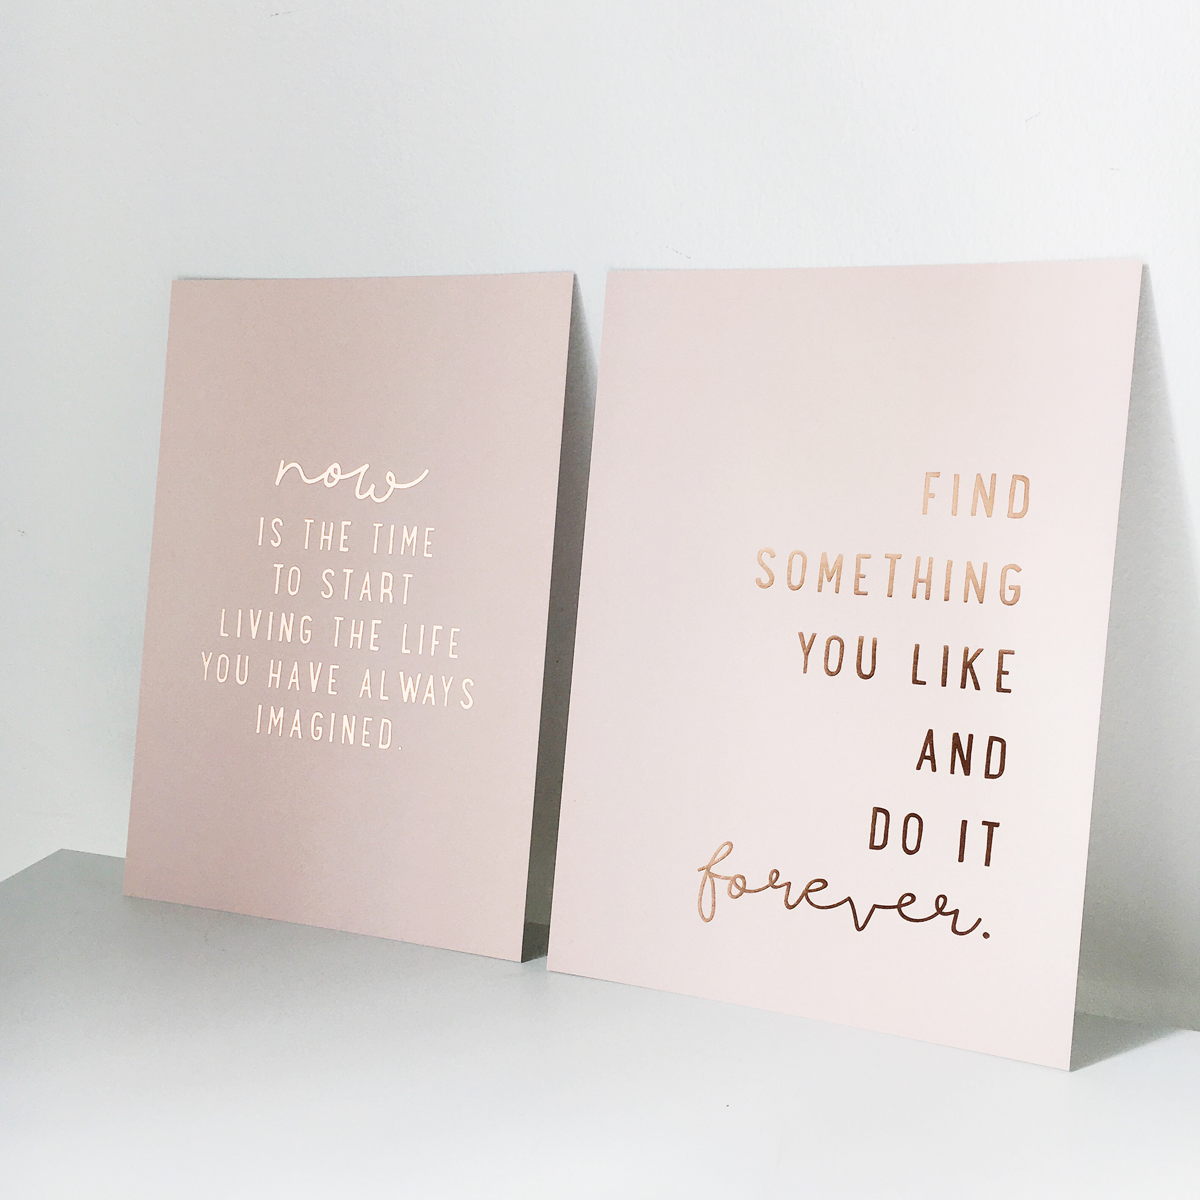 these two wonderful posters printed on cardboard and imprinted with rose gold bedroom inspo. Black Bedroom Furniture Sets. Home Design Ideas